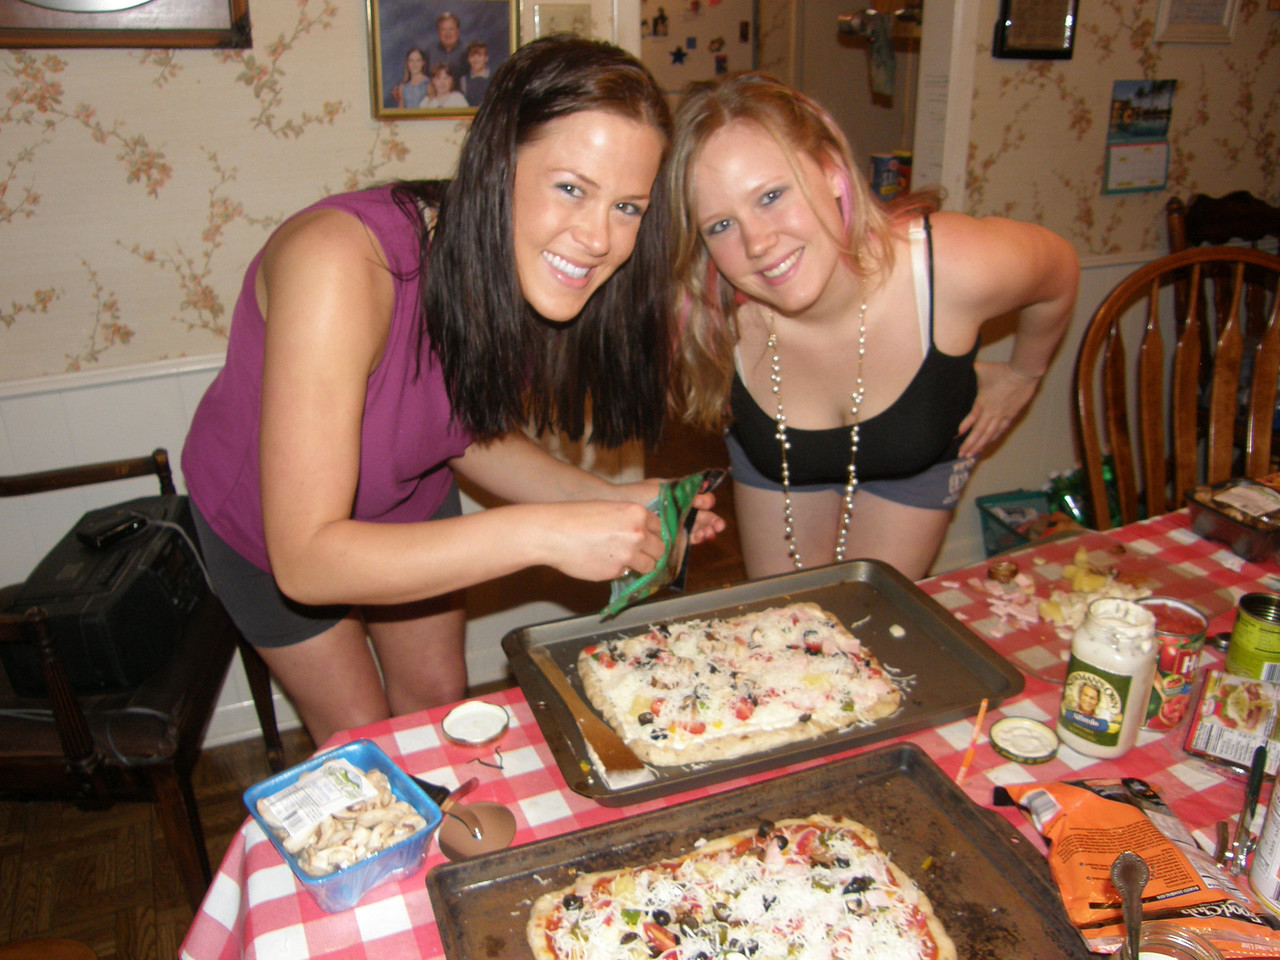 Hurry Sarah and Katie, I am hungry!   What sweeties!